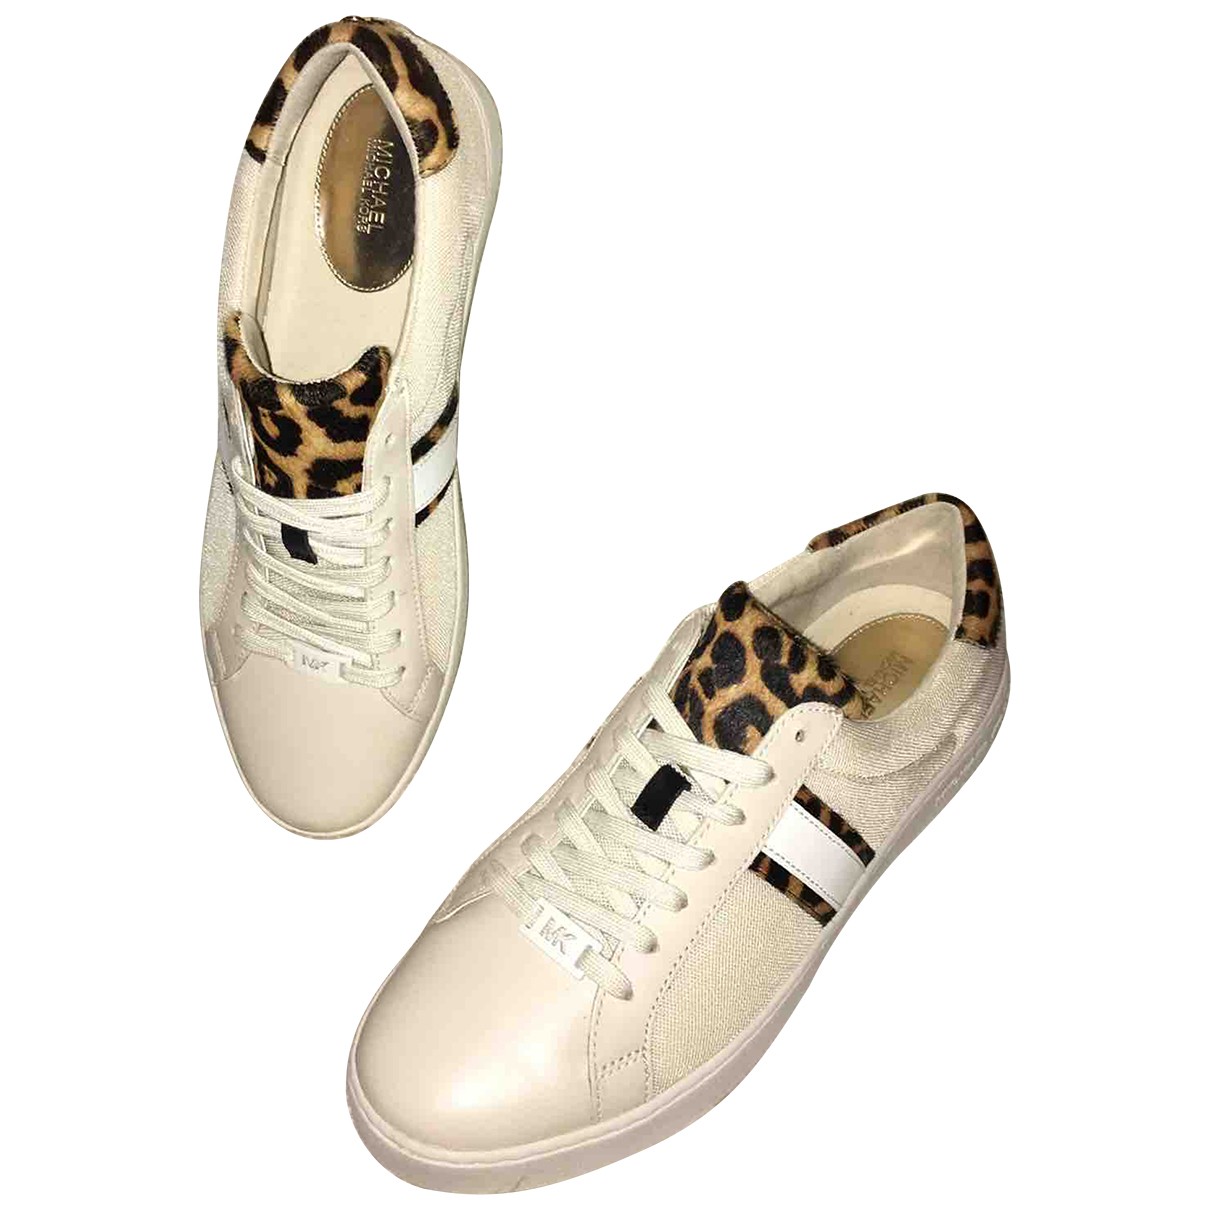 Michael Kors N Beige Leather Trainers for Women 39 EU